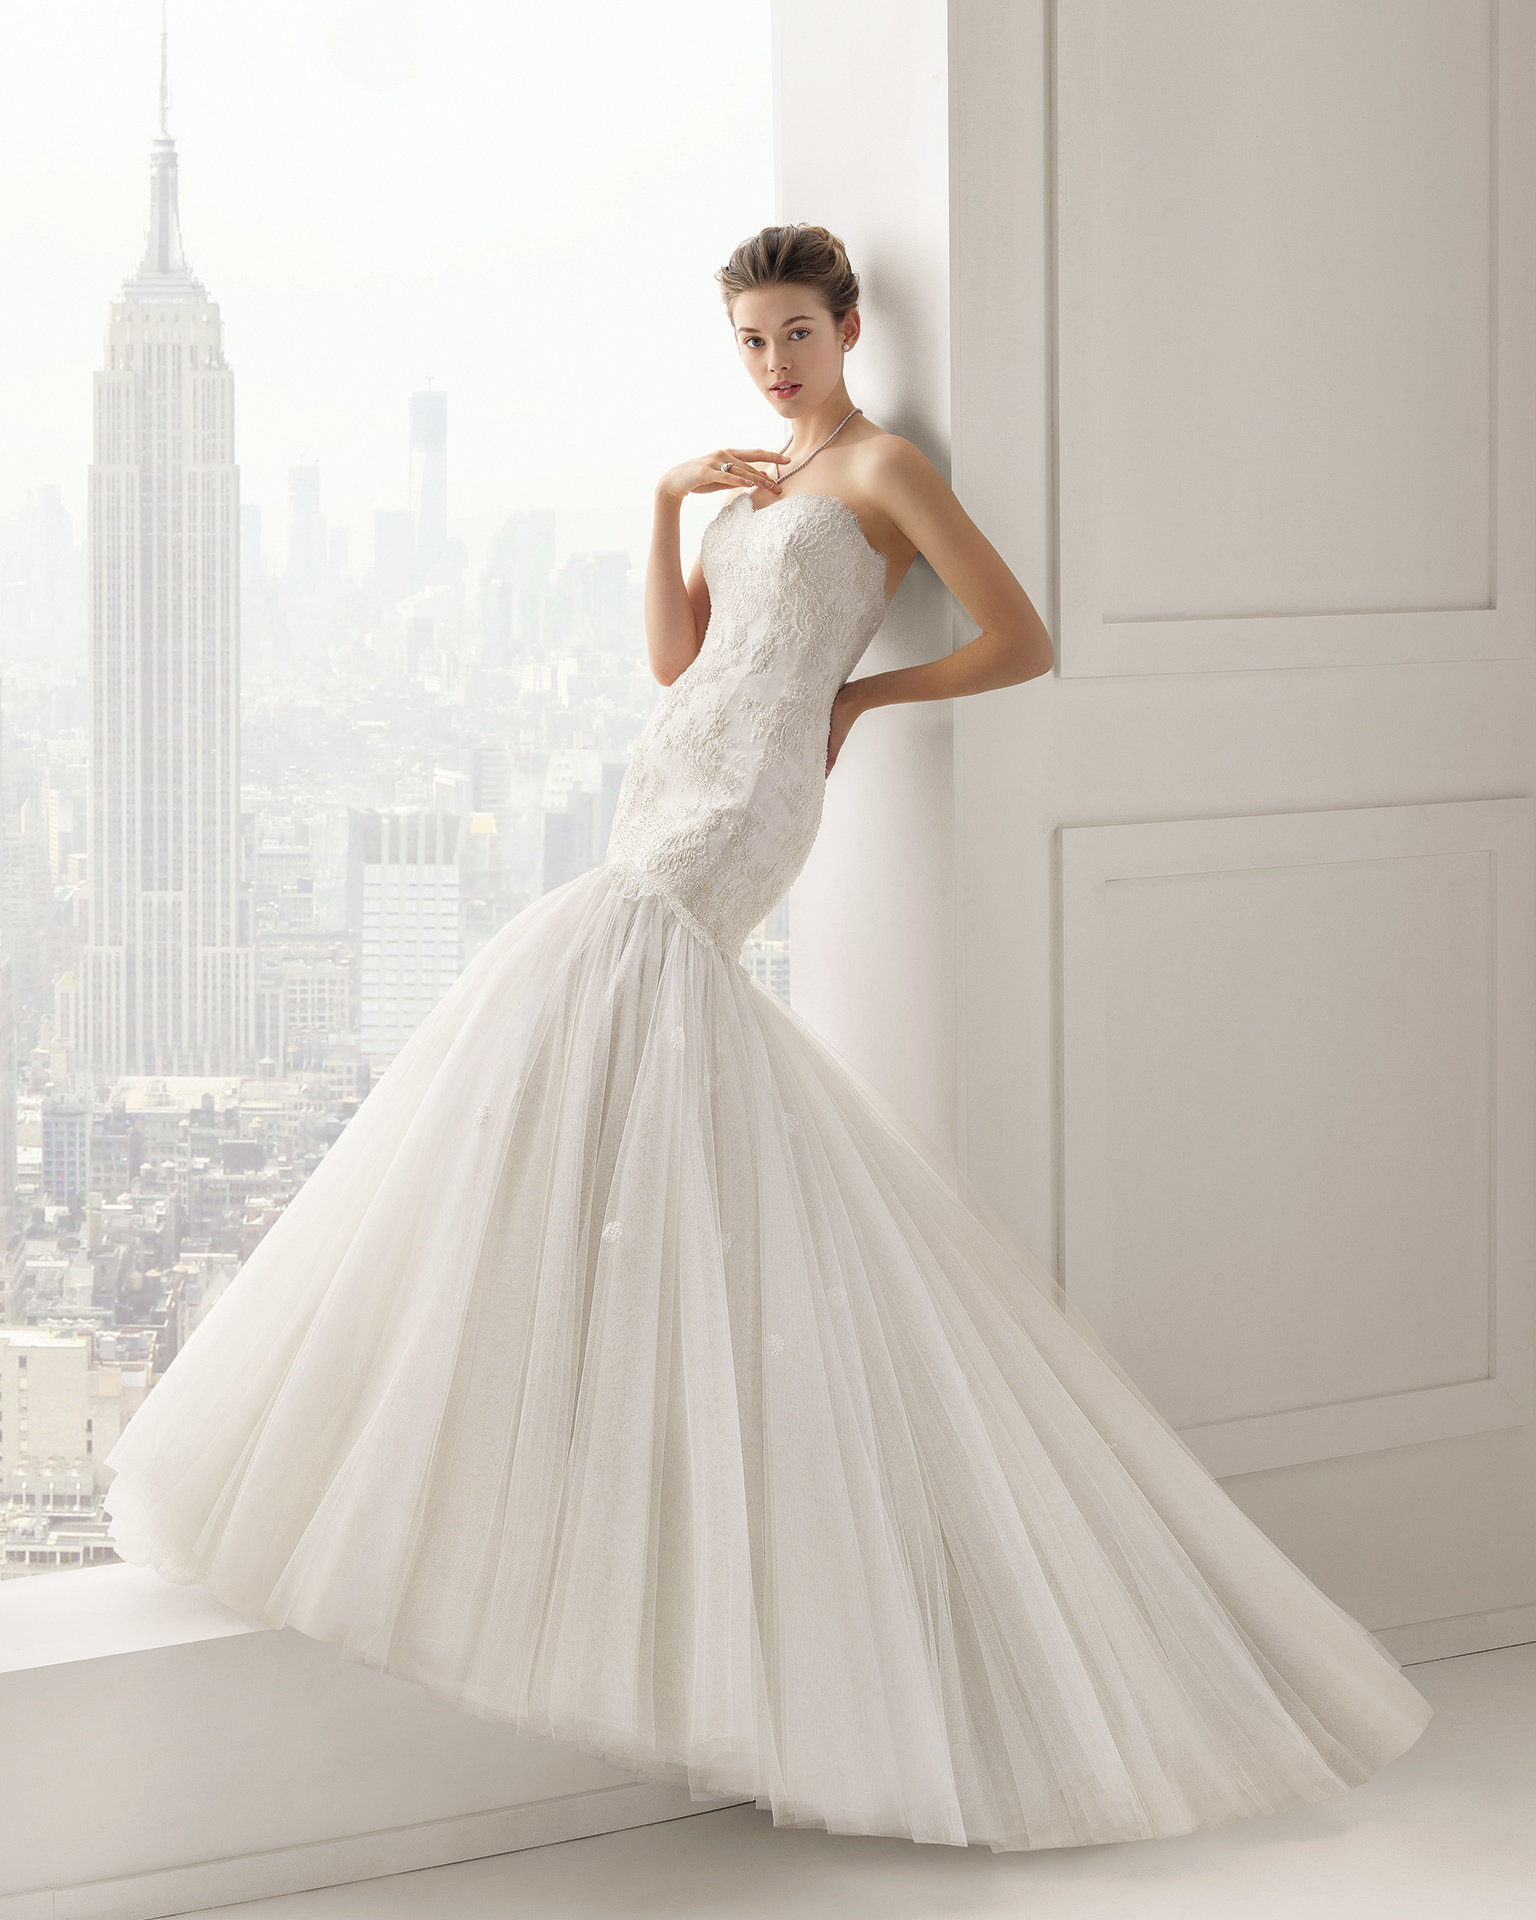 THE MAGNIFICENT WEDDING DRESSES BY ROSA CLARA 2015